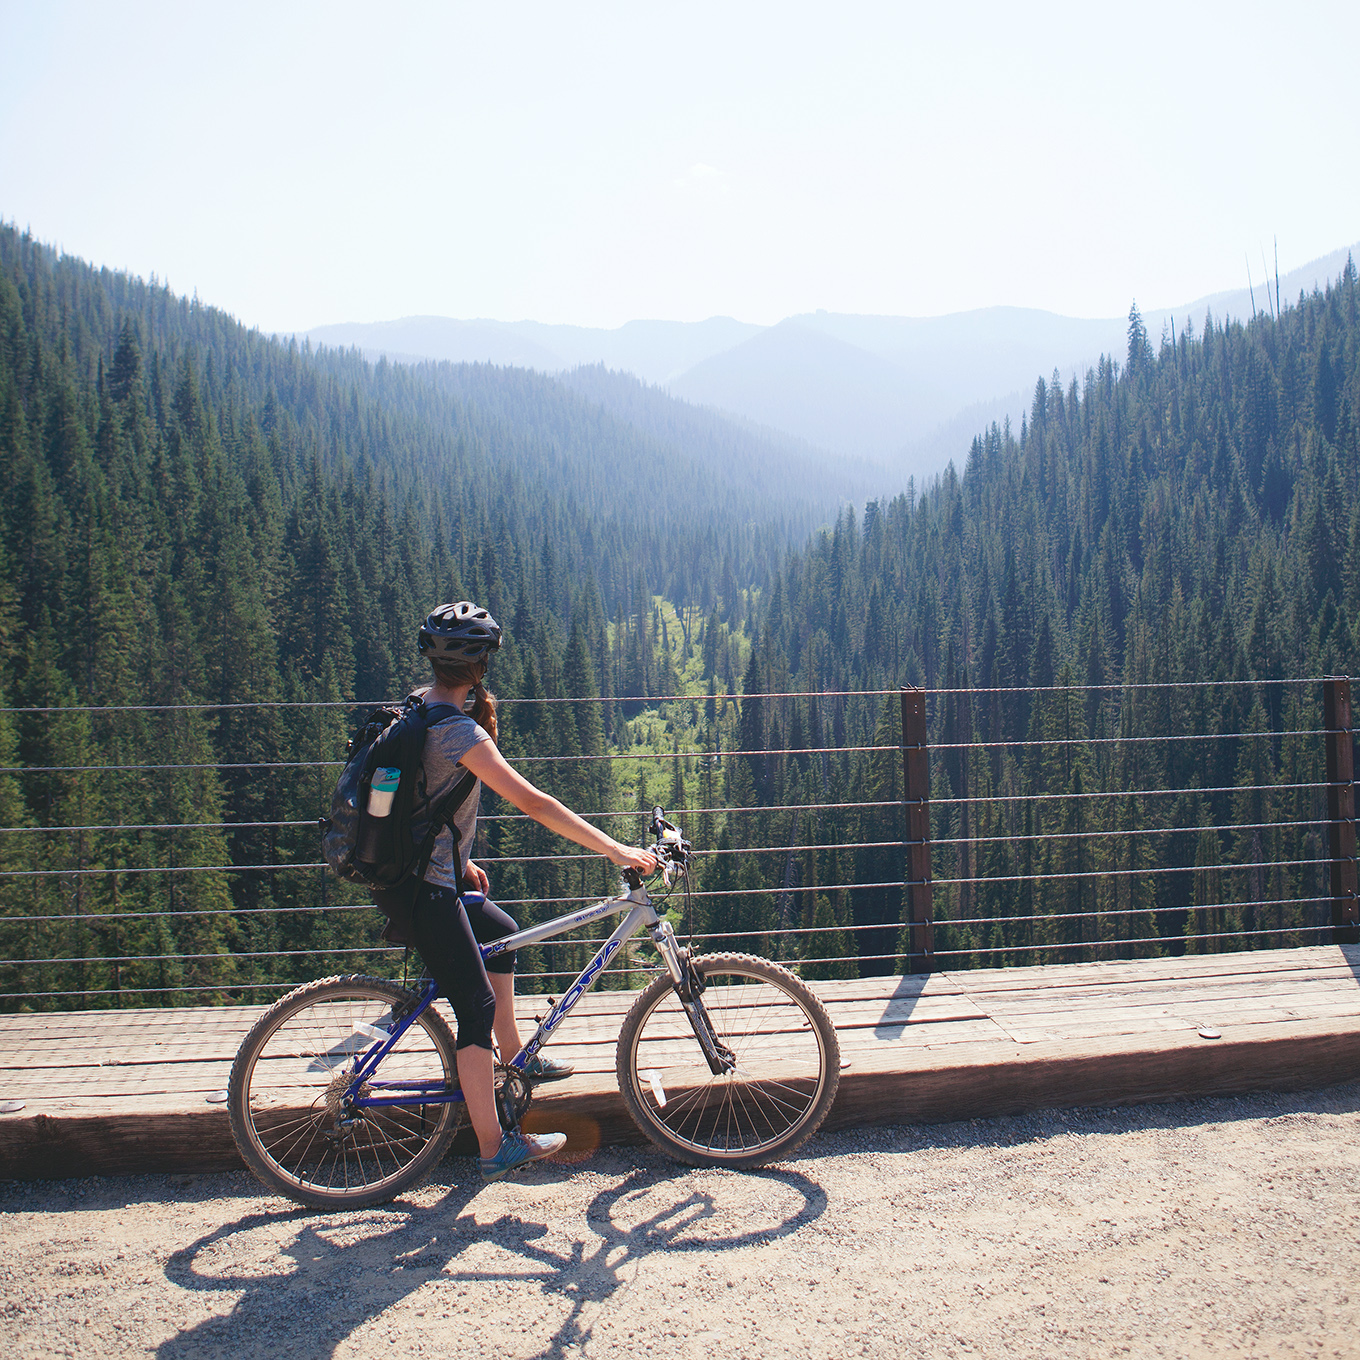 This 15-mile, downhill rail-to-trail conversion is an unforgettable activity that the whole family will enjoy! Here's everything you need to know about the Route of the Hiawatha mountain bike trail.